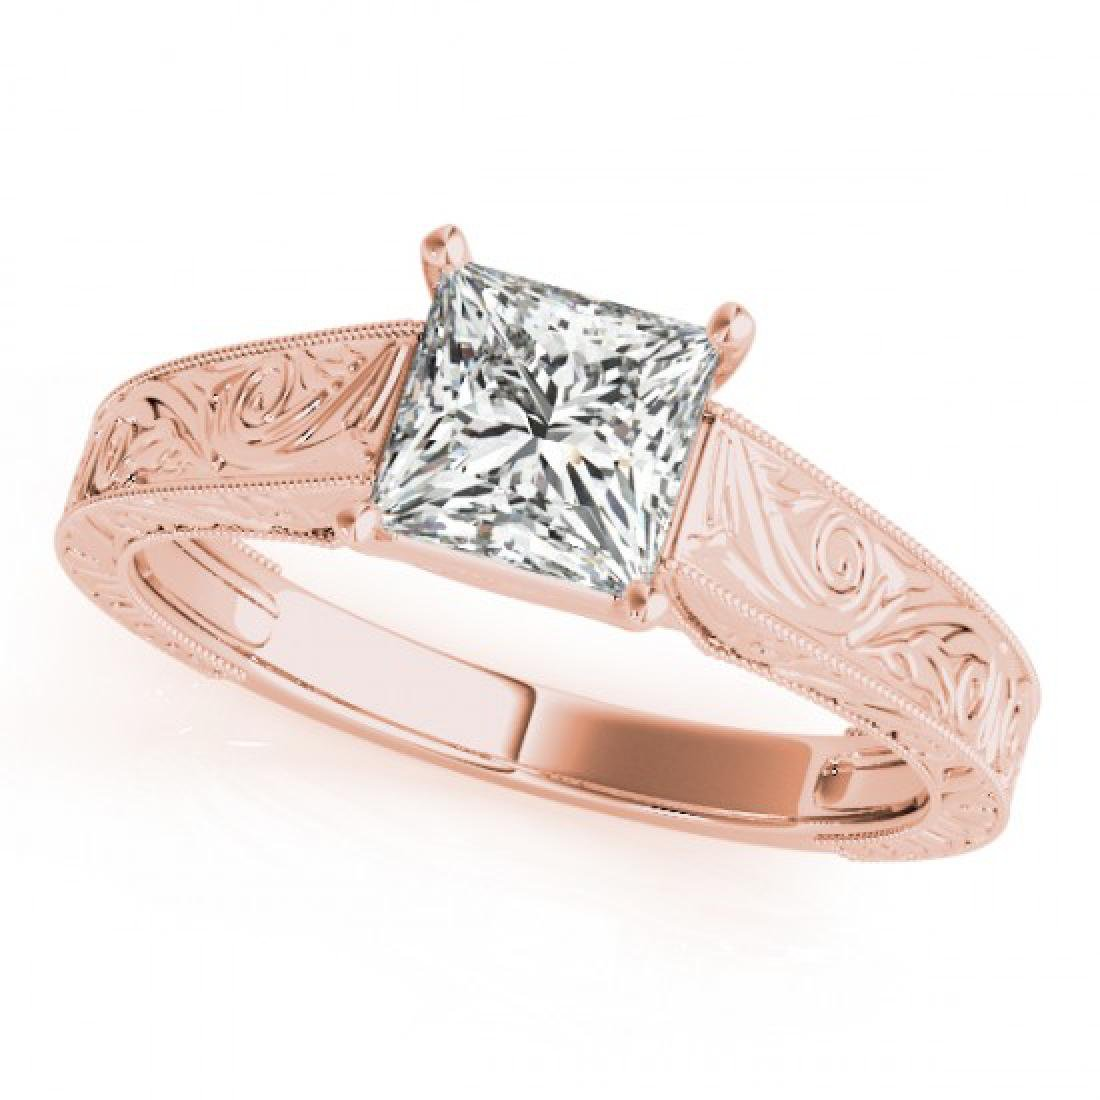 0.75 CTW Certified VS/SI Princess Diamond Ring 14K Rose